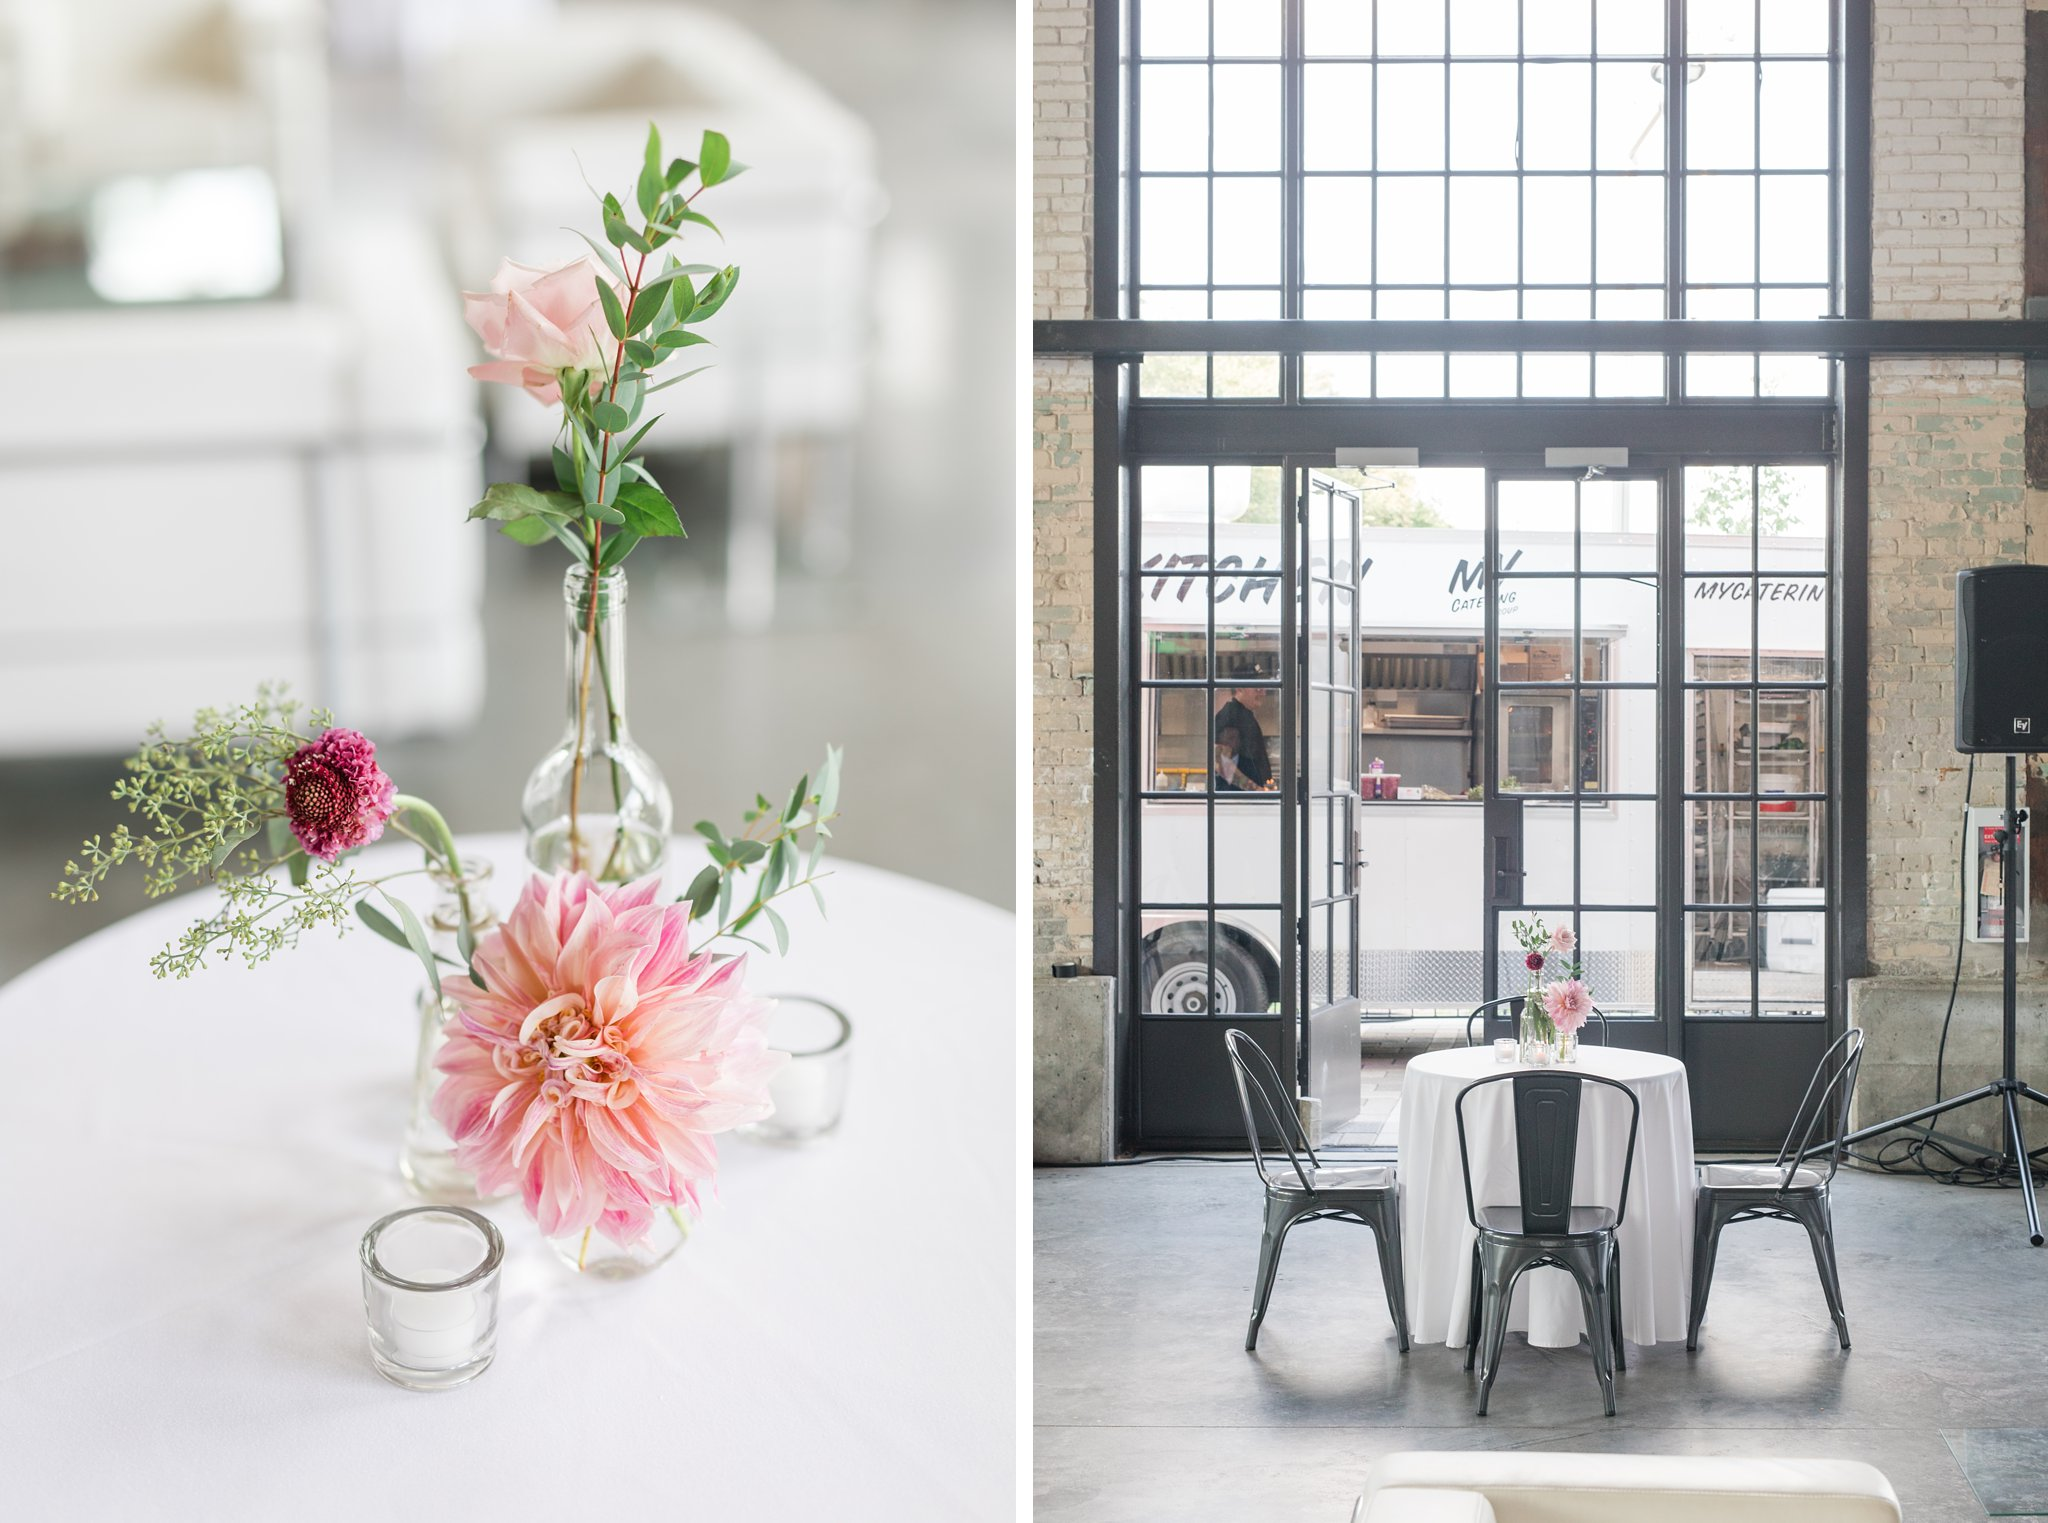 Large windows Horticulture Building wedding at Lansdowne Amy Pinder Photography